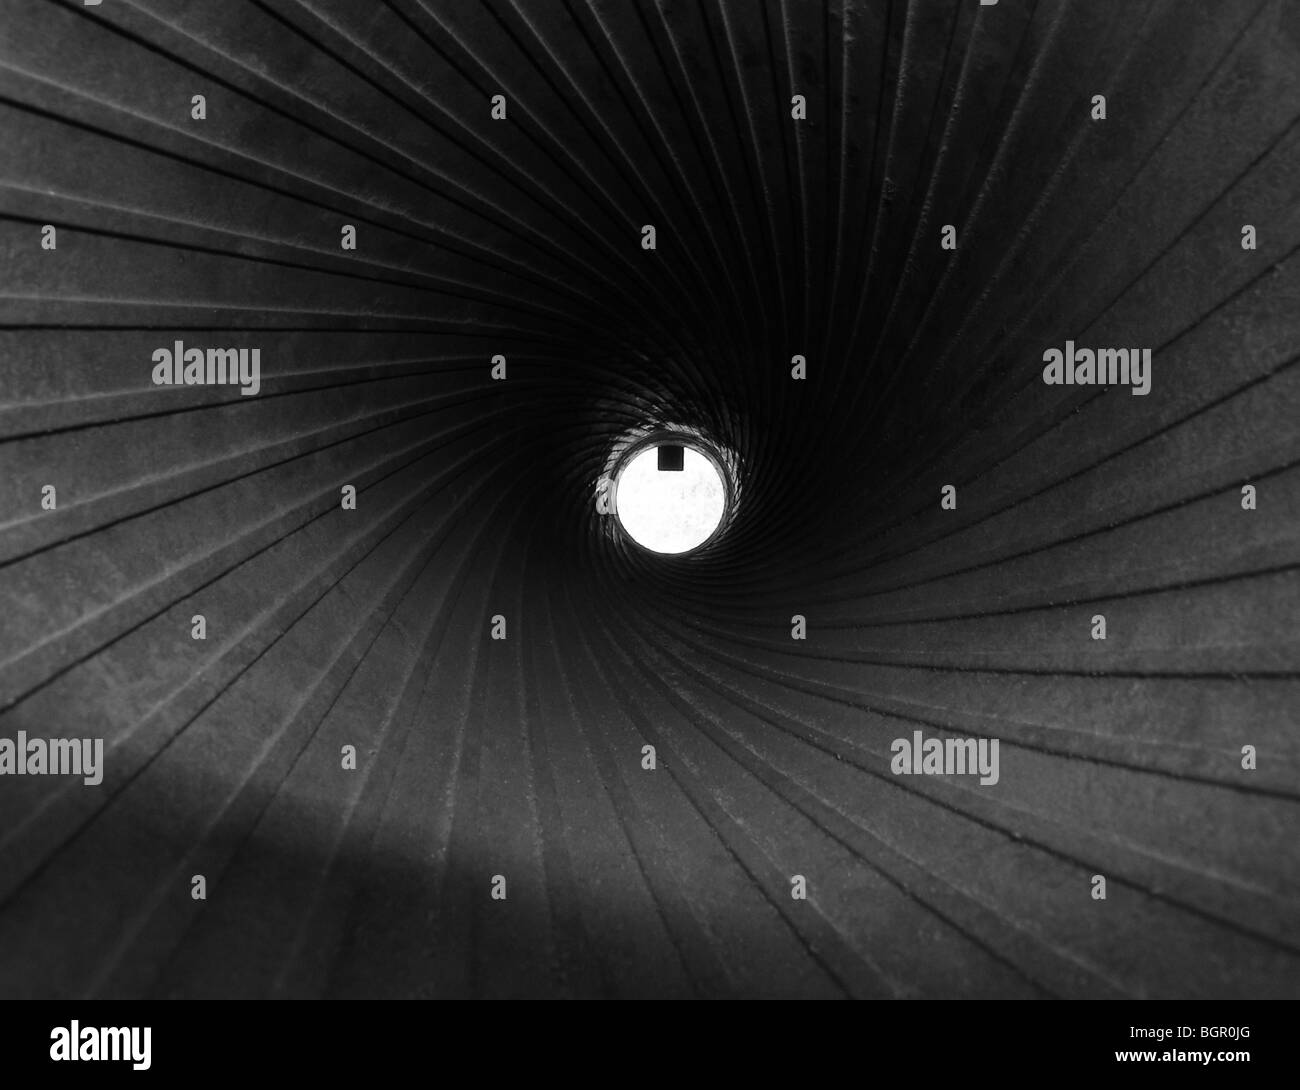 White disk with shiny steel spirals of rifling, view of cannon barrel on the inside, monochrome image - Stock Image